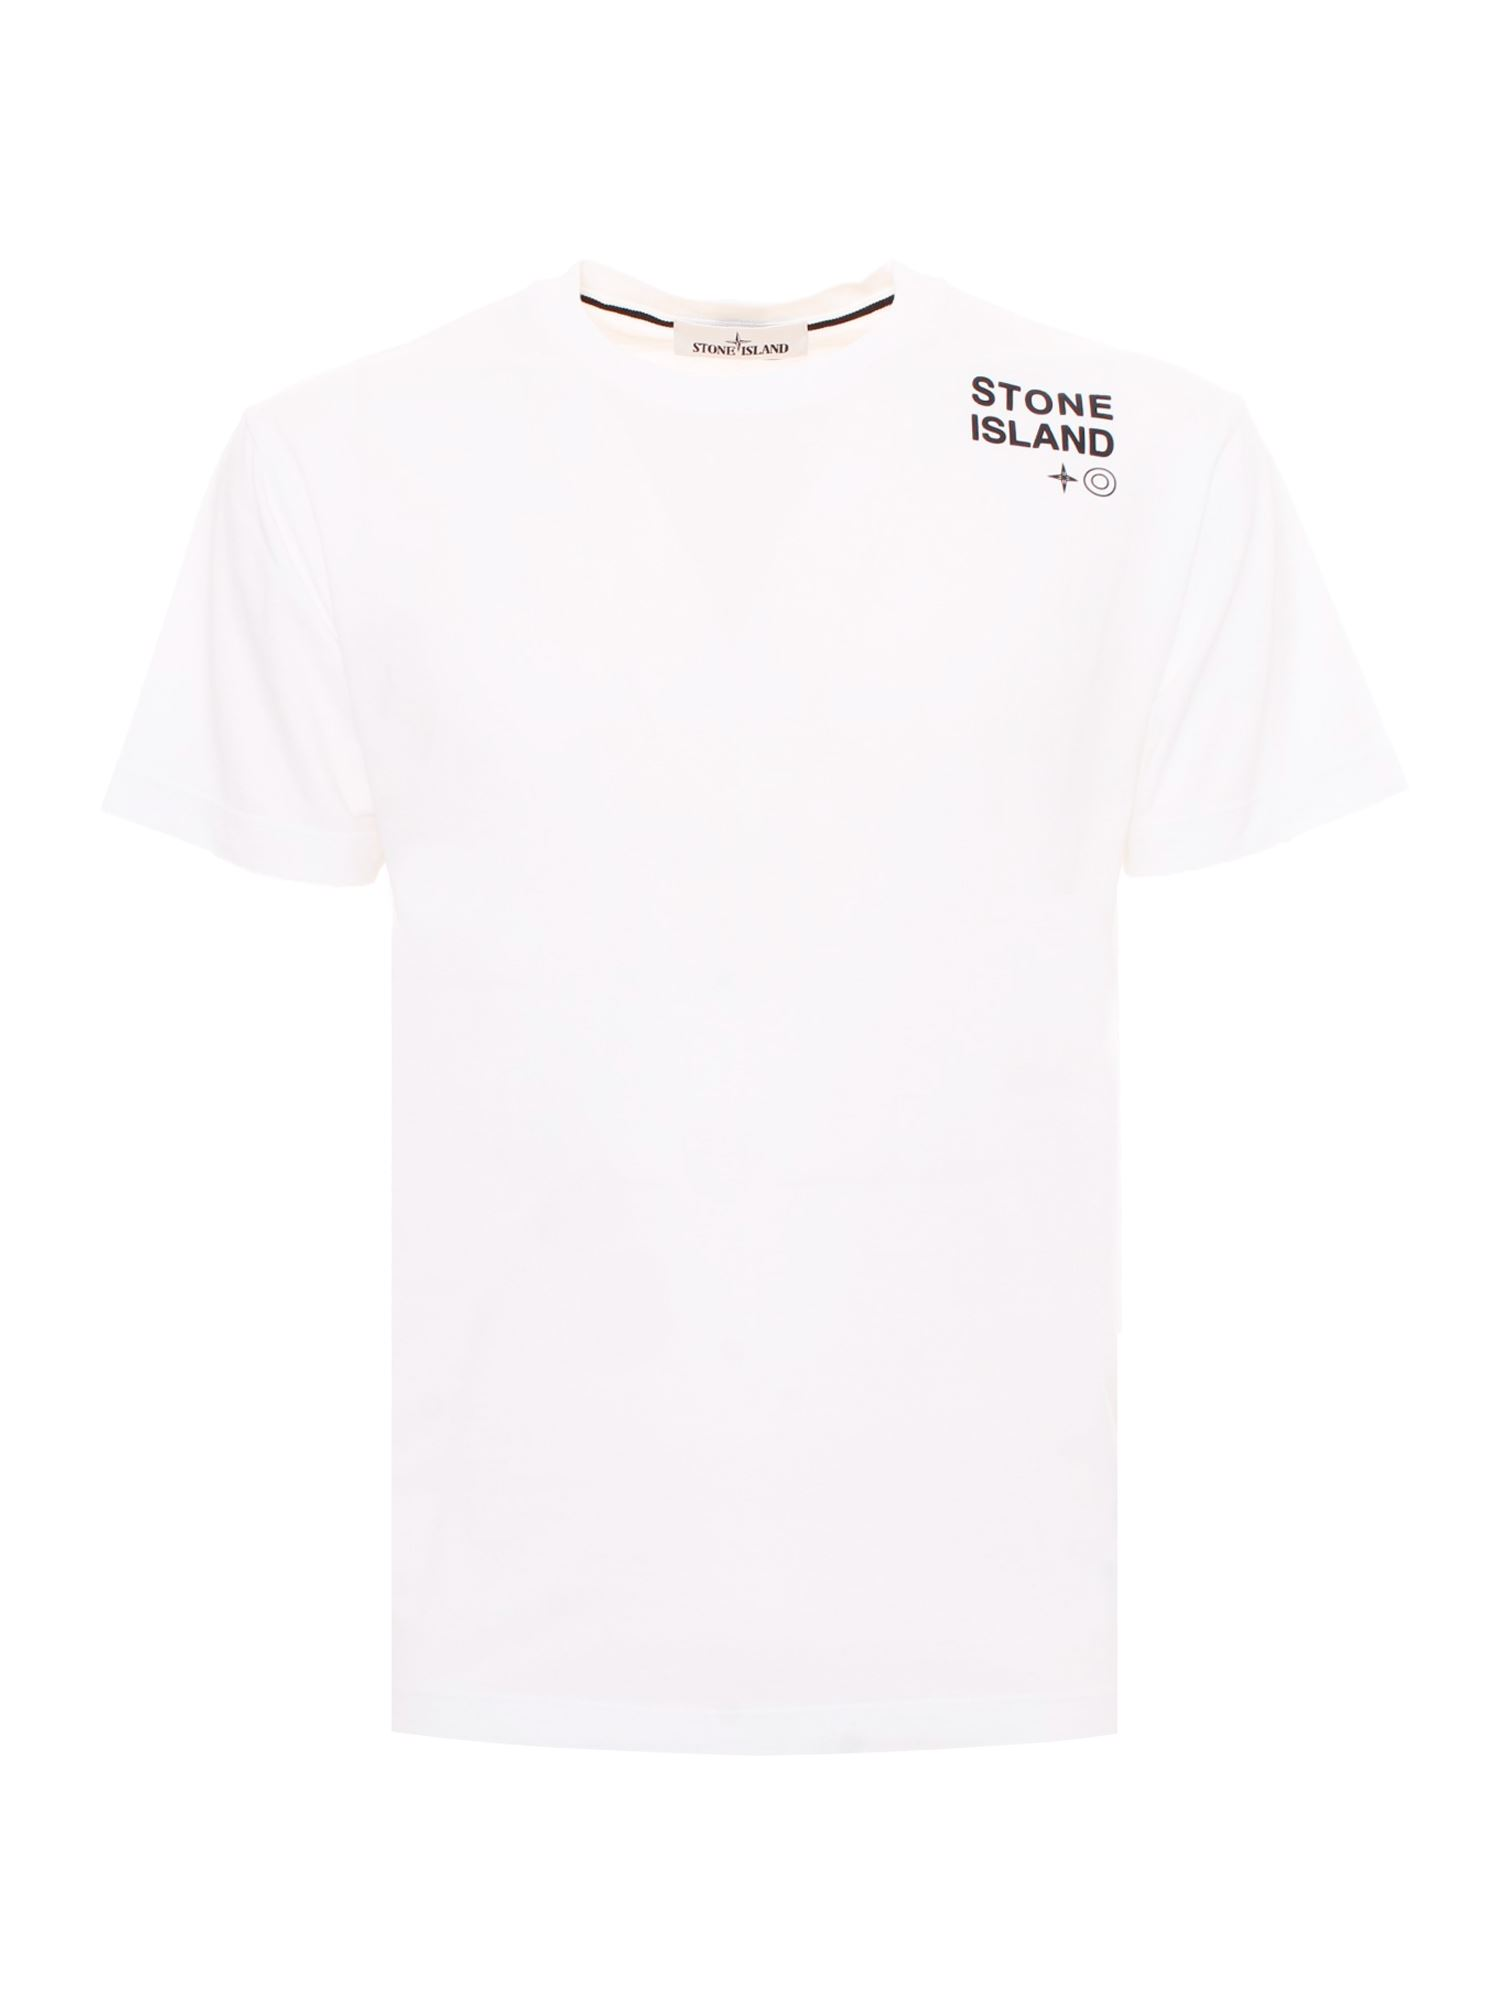 Stone Island LOGO LETTERING T-SHIRT IN WHITE